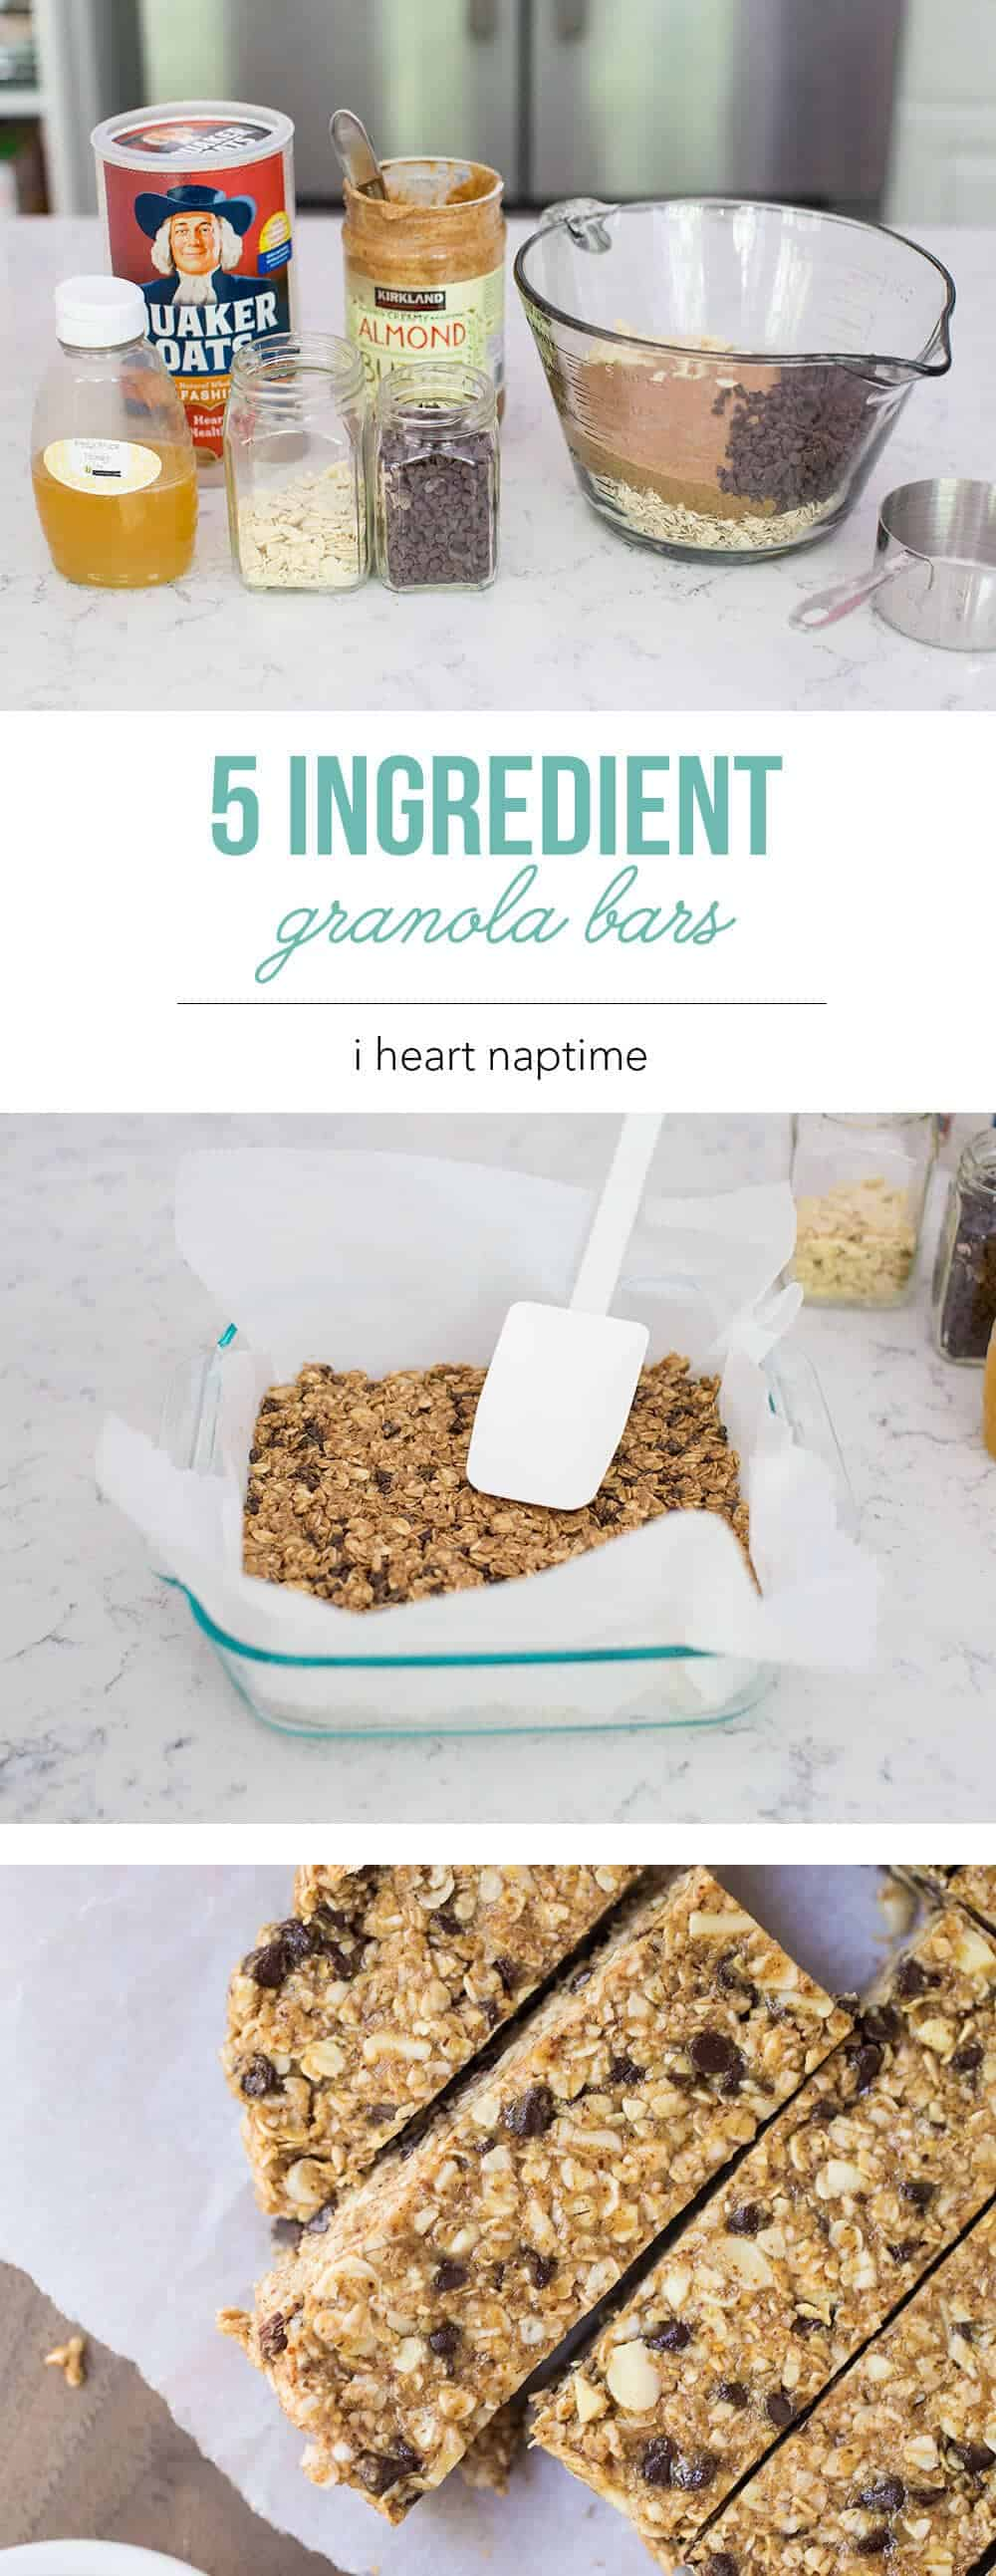 Best homemade granola bar recipe no bake i heart nap time favorite no bake homemade granola bars made with only 5 ingredients this is a ccuart Image collections